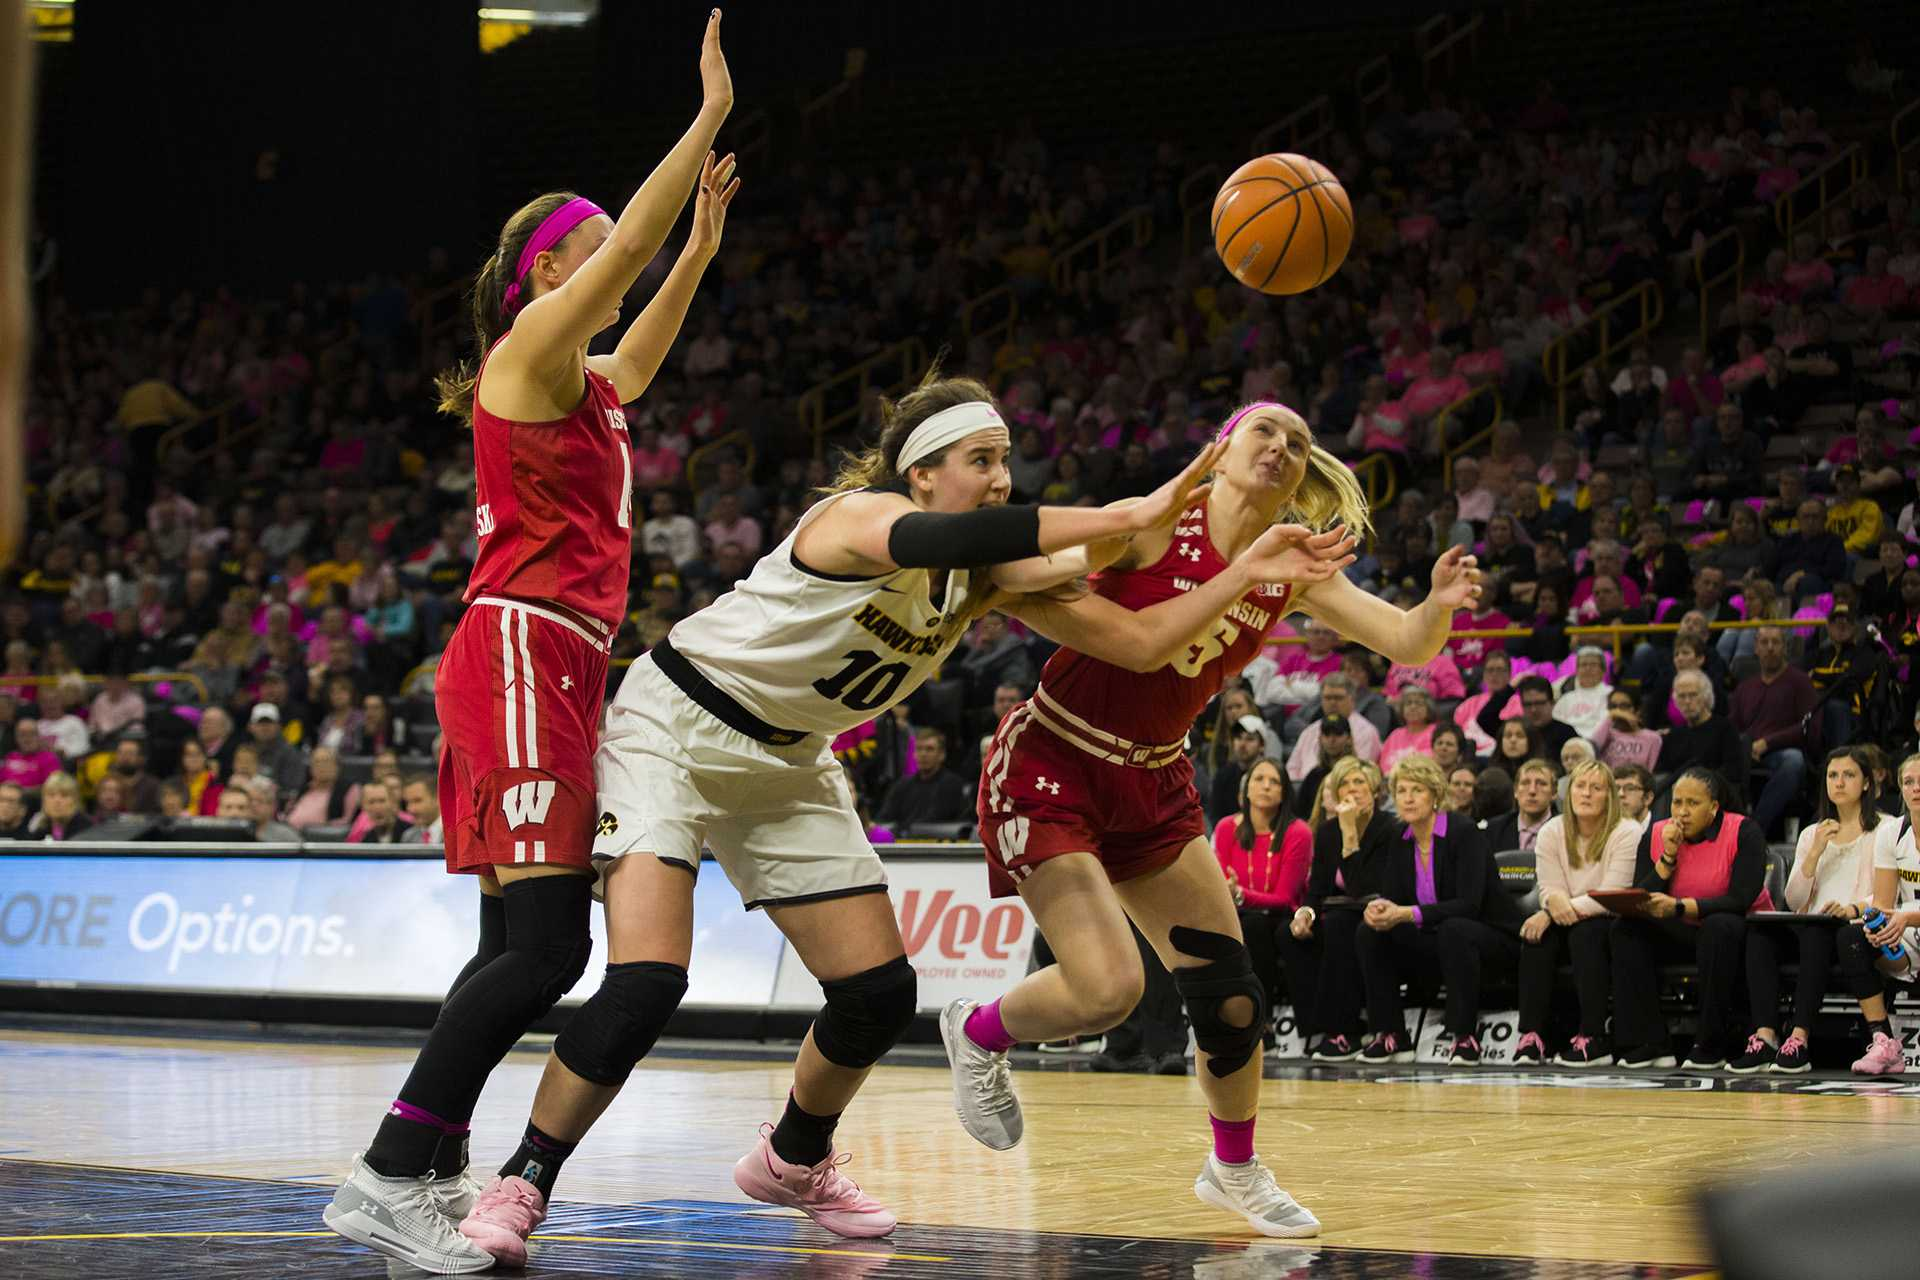 Iowa forward Megan Gustafson and Wisconsin guard Lexy Richardson dive for the ball during the Iowa/Wisconsin basketball game at Carver-Hawkeye Arena on Sunday, Feb. 18, 2018. The Hawkeyes defeated the Badgers, 88-61. (Lily Smith/The Daily Iowan)